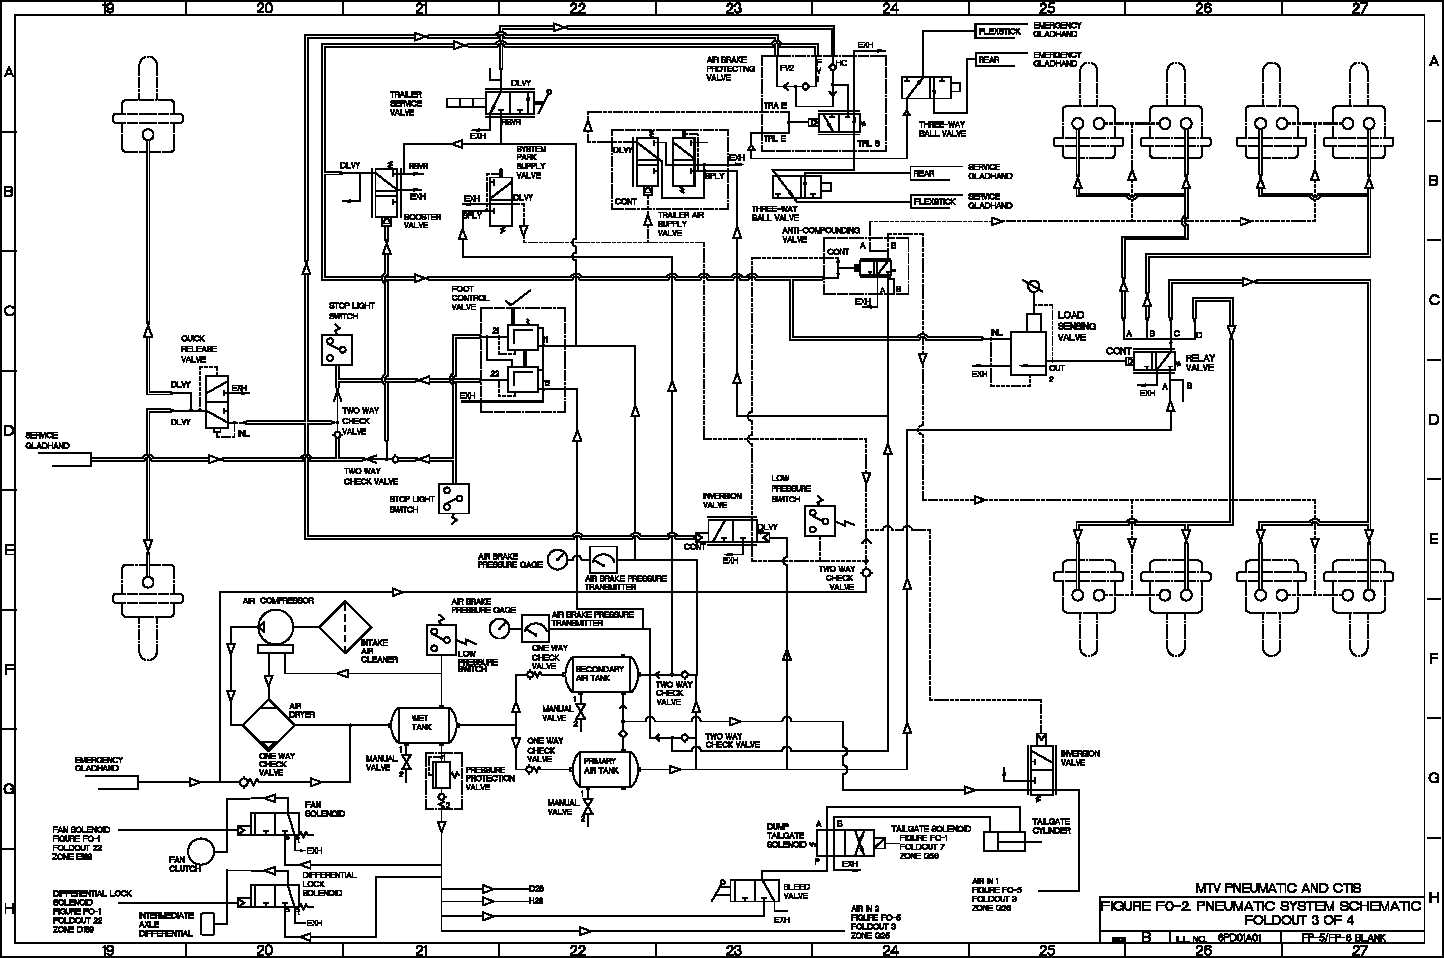 Start All 620 Wiring Diagram Wire Data Schema Electrical Diagrams Figure Fo 2 Pneumatic System Schematic Foldout 3 Of 4 Tm Way Switch